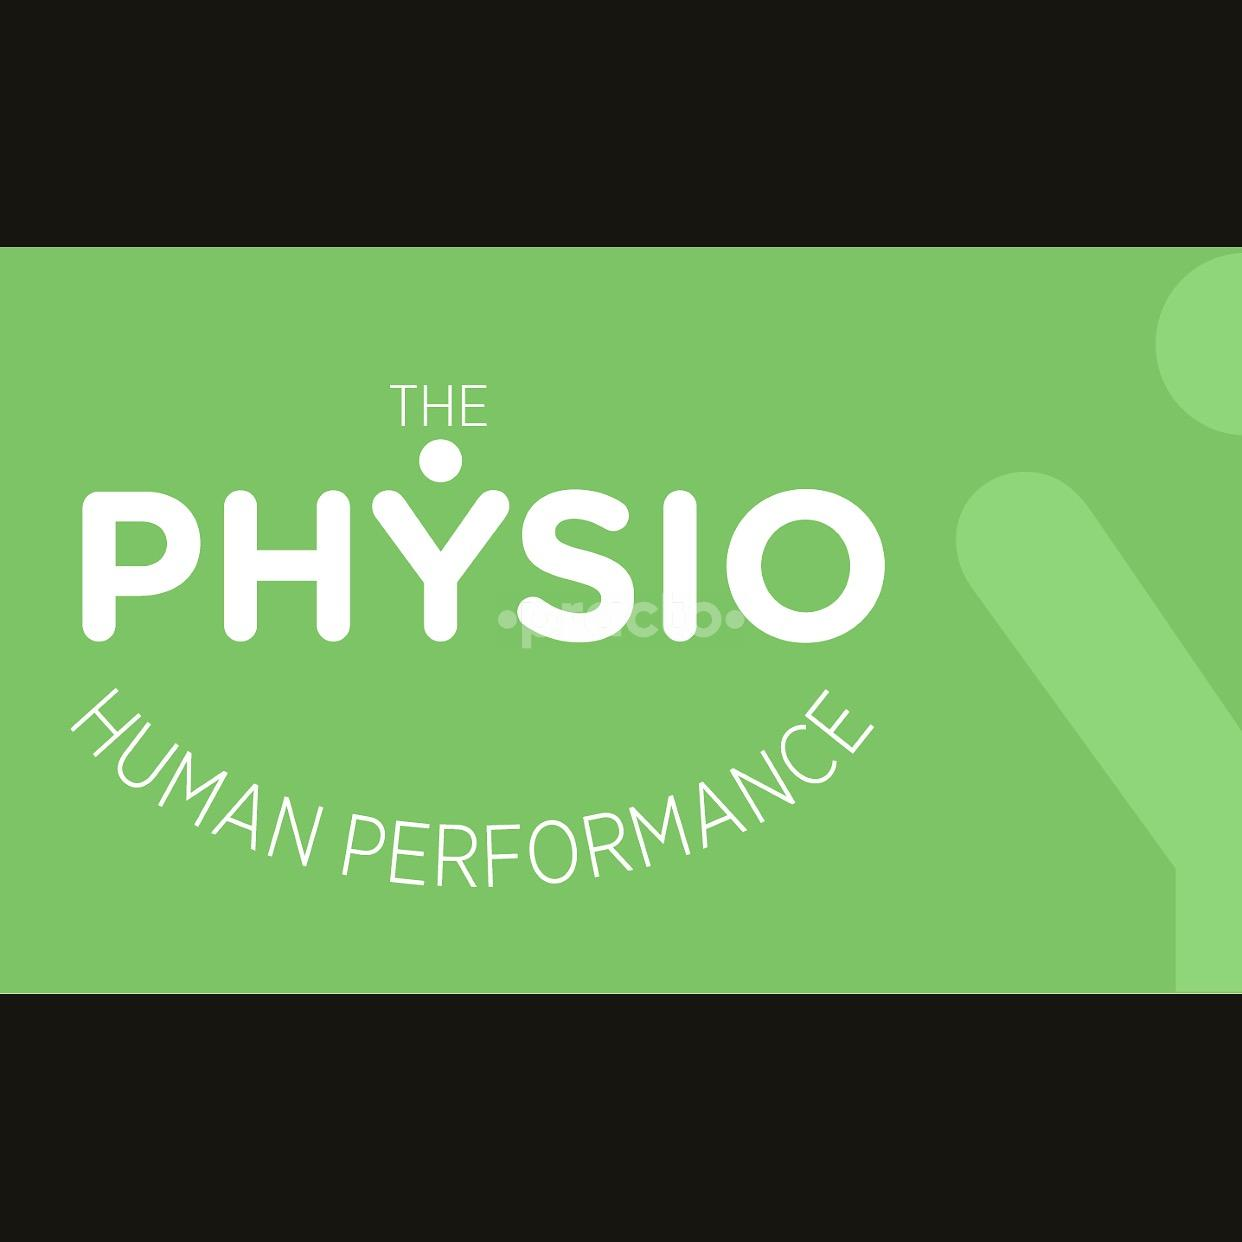 The Physio Human Performance